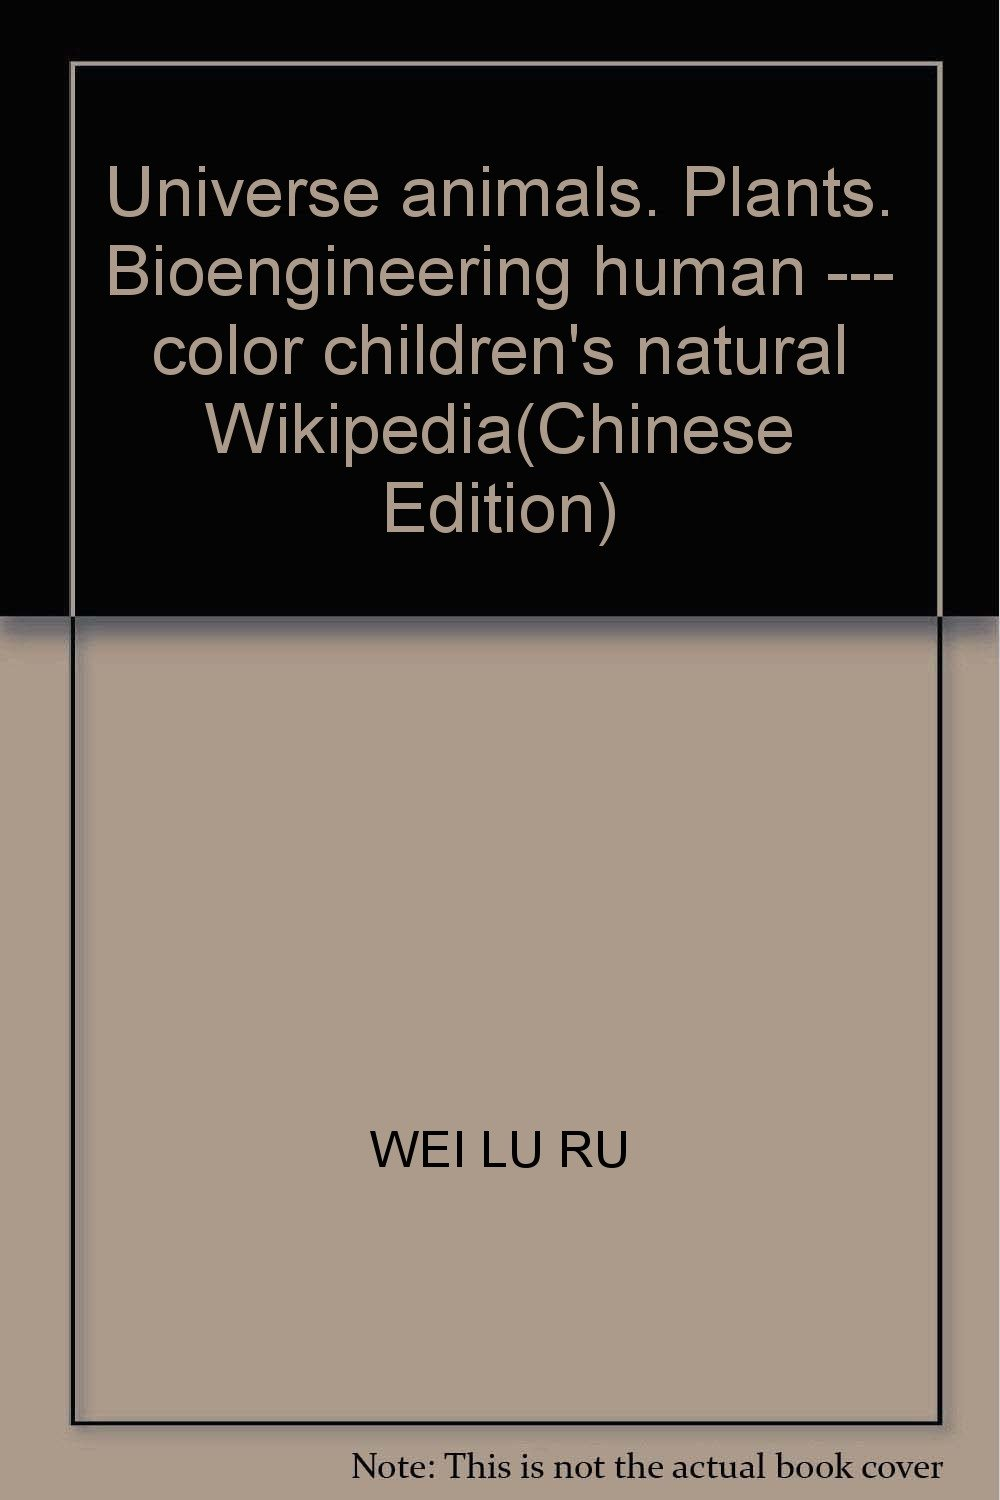 43b6ebd4550cc Bioengineering human --- color children s natural Wikipedia(Chinese  Edition) Paperback – January 1